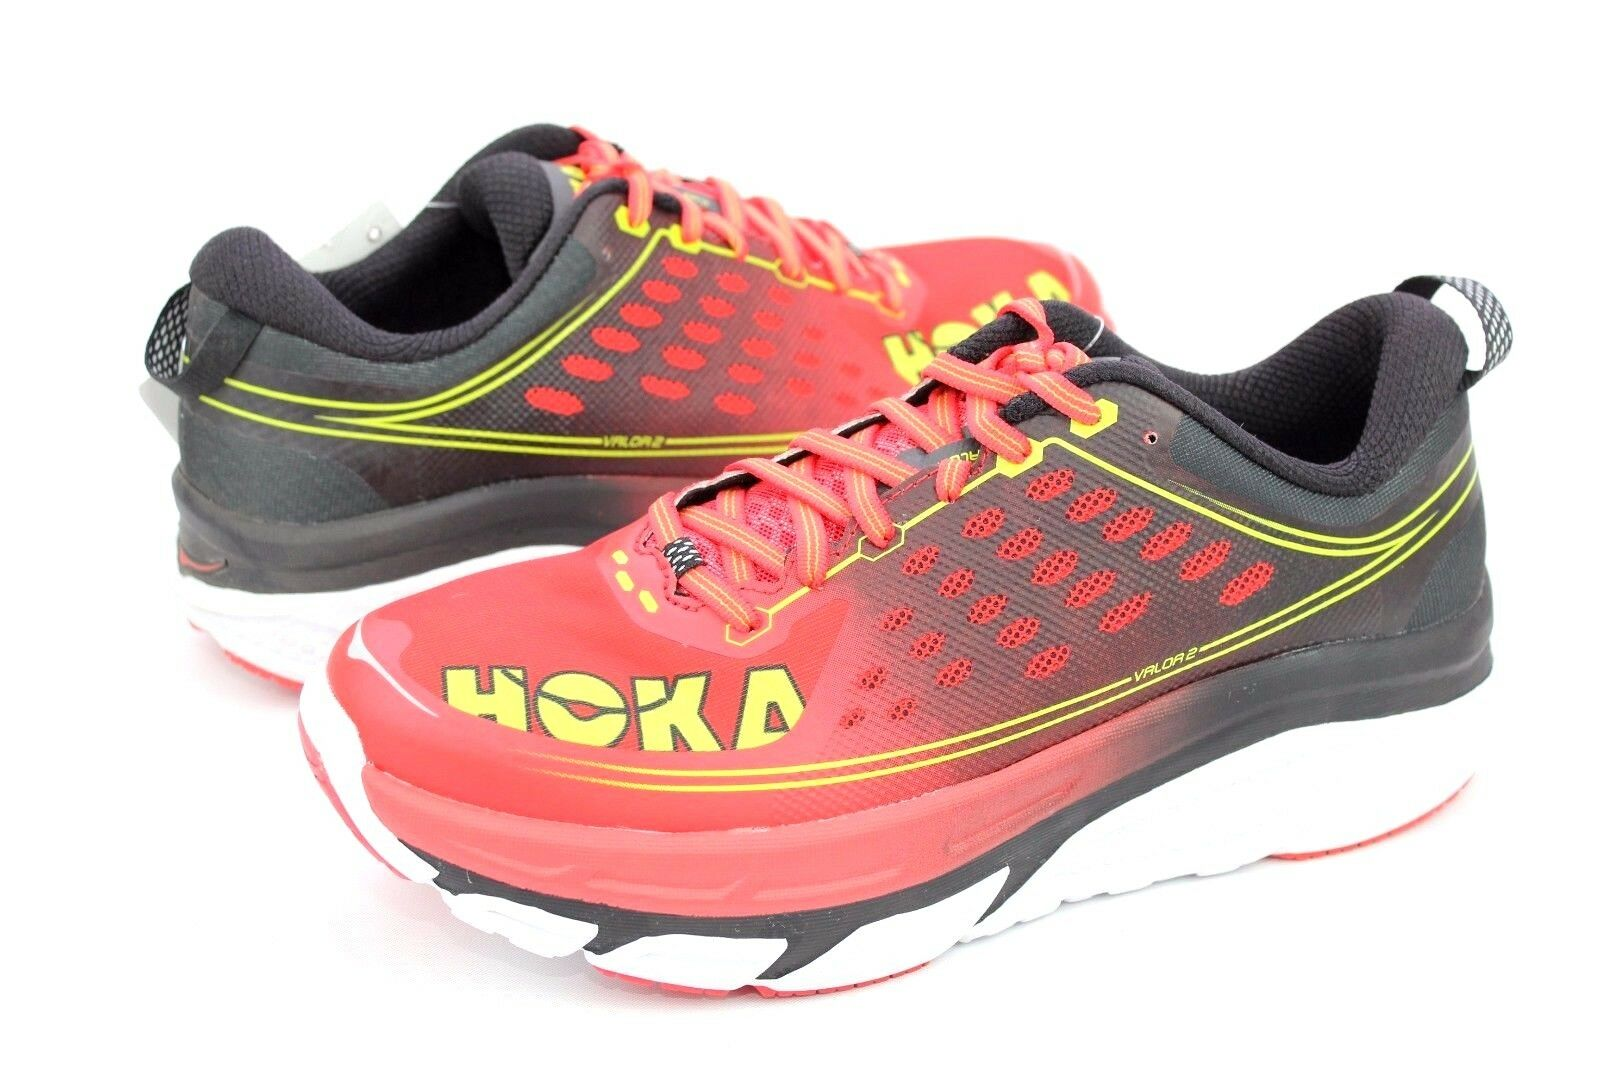 f079966dd9c1d Hoka One One One One Mens Valor 2 Running Shoes Poppy Red   Black Size 9